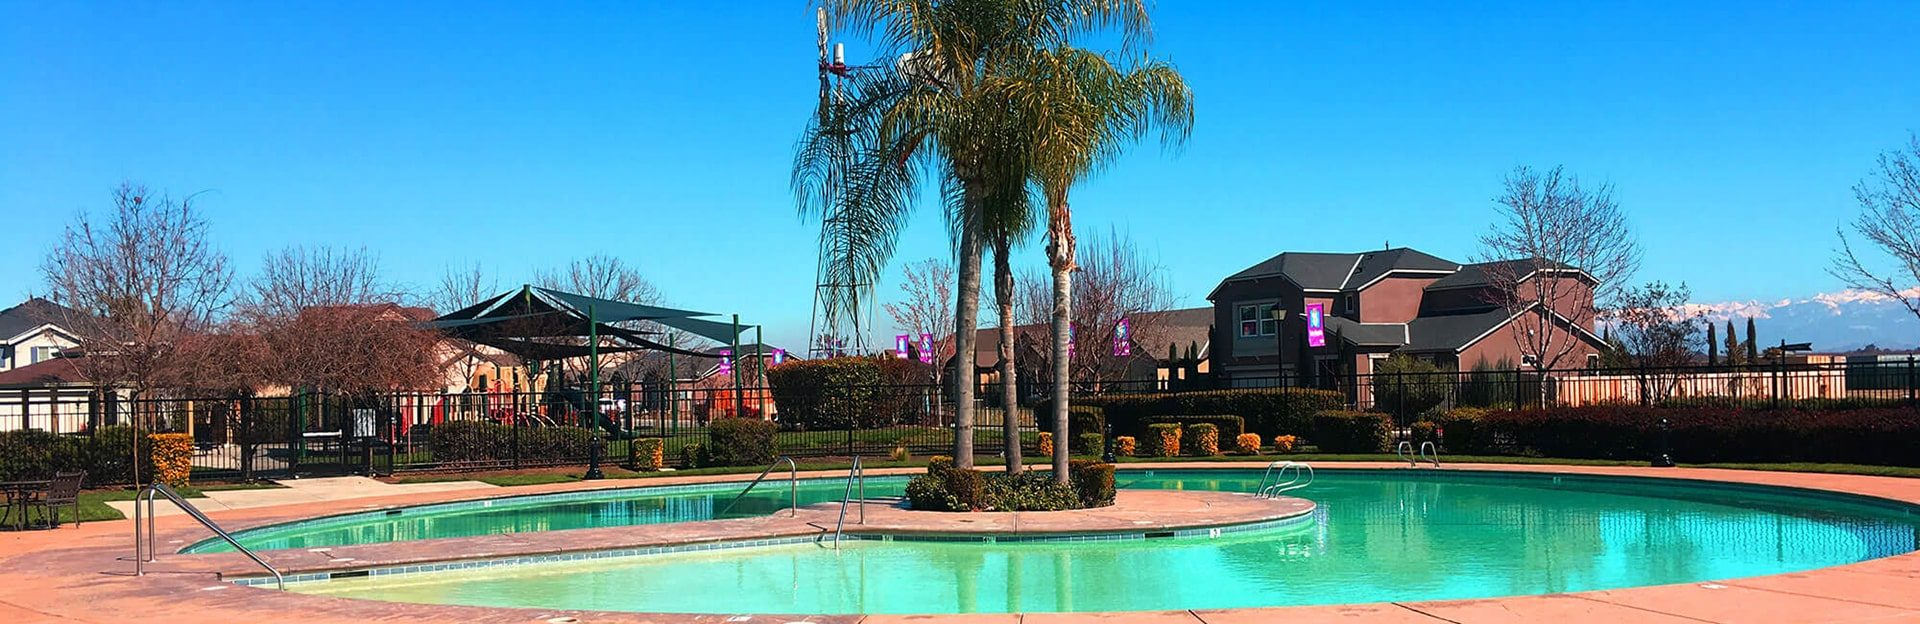 A pool with a palm tree in the middle of the town houses; Best Minds in Real Estate